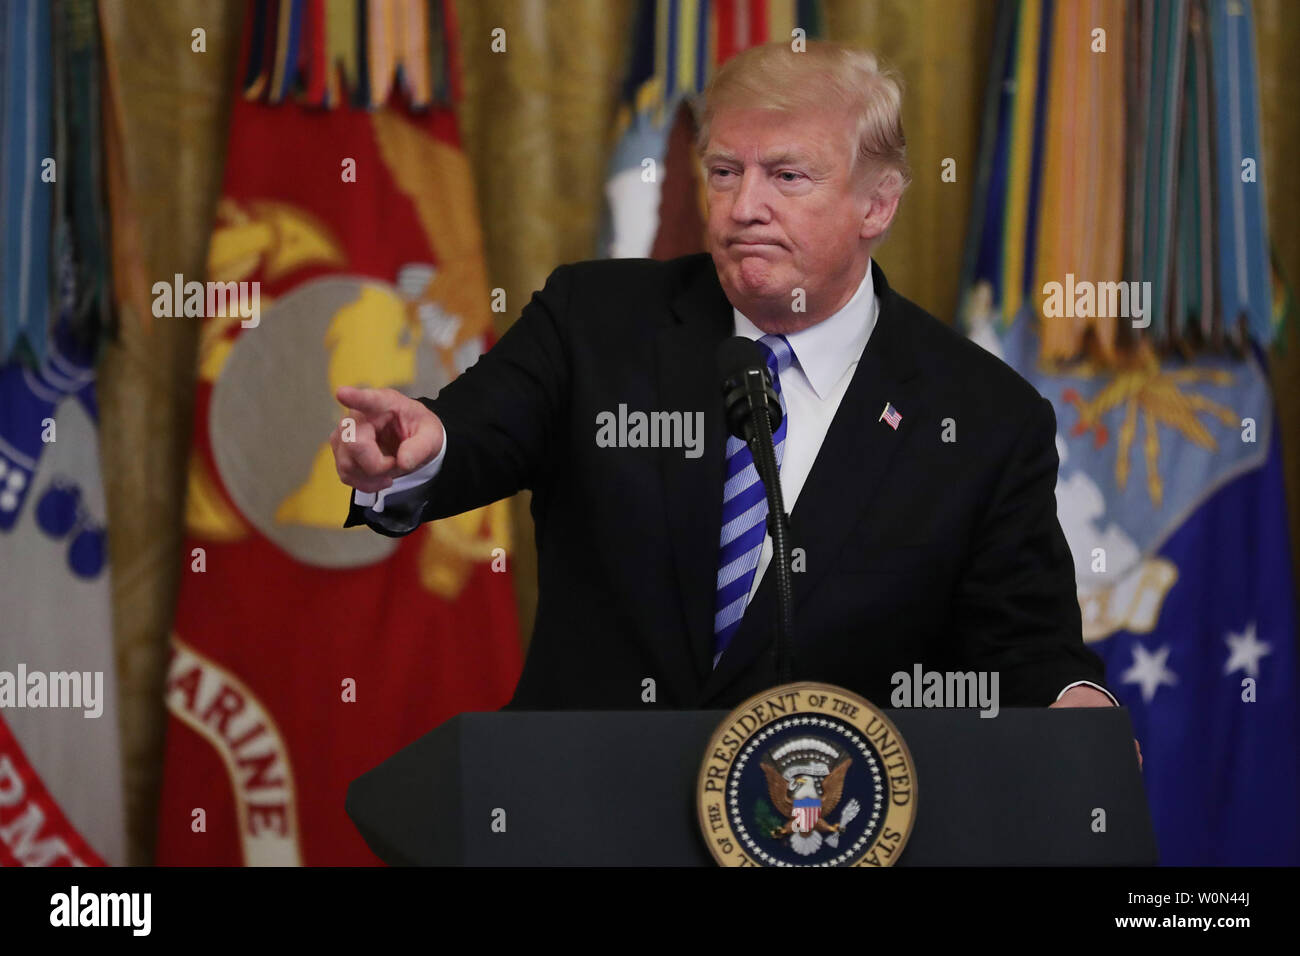 U.S. President Donald Trump commemorates the 35th anniversary of attack on the Beirut Barracks during an event in the East Room of the White House October 25, 2018 in Washington, DC. On October 23, 1983 two truck bombs struck the buildings housing Multinational Force in Lebanon (MNF) peacekeepers, killing 241 U.S. and 58 French peacekeepers and 6 civilians.    Photo by Chip Somodevilla/UPI Stock Photo